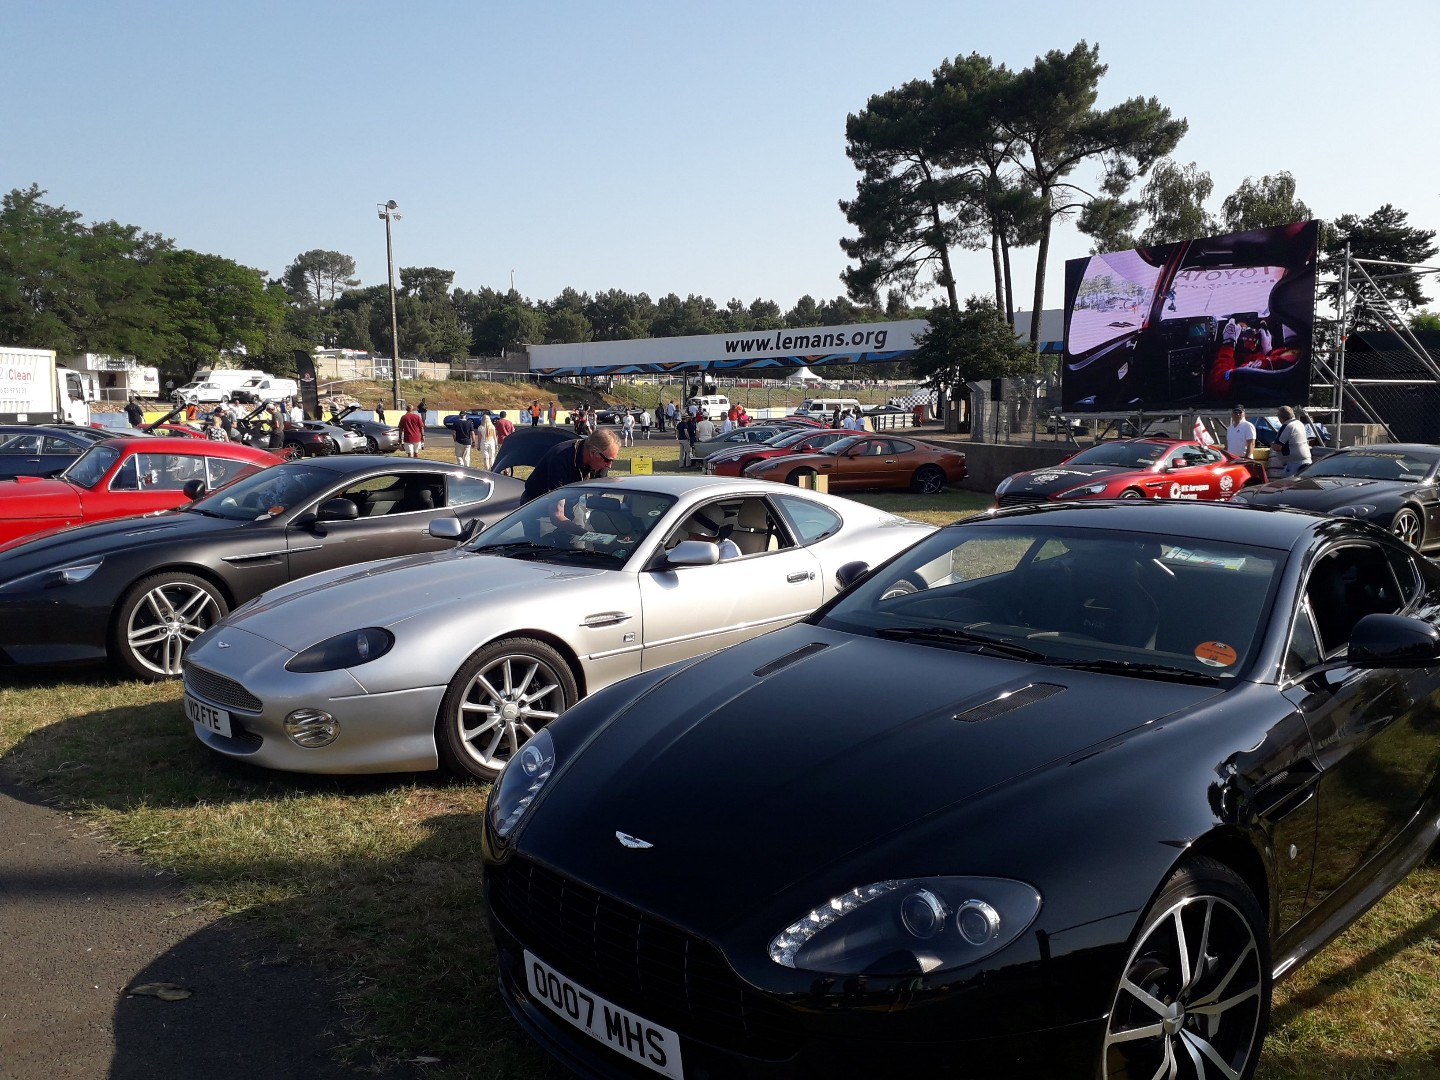 180706_Classic Le Mans_Parking_AReed.jpg